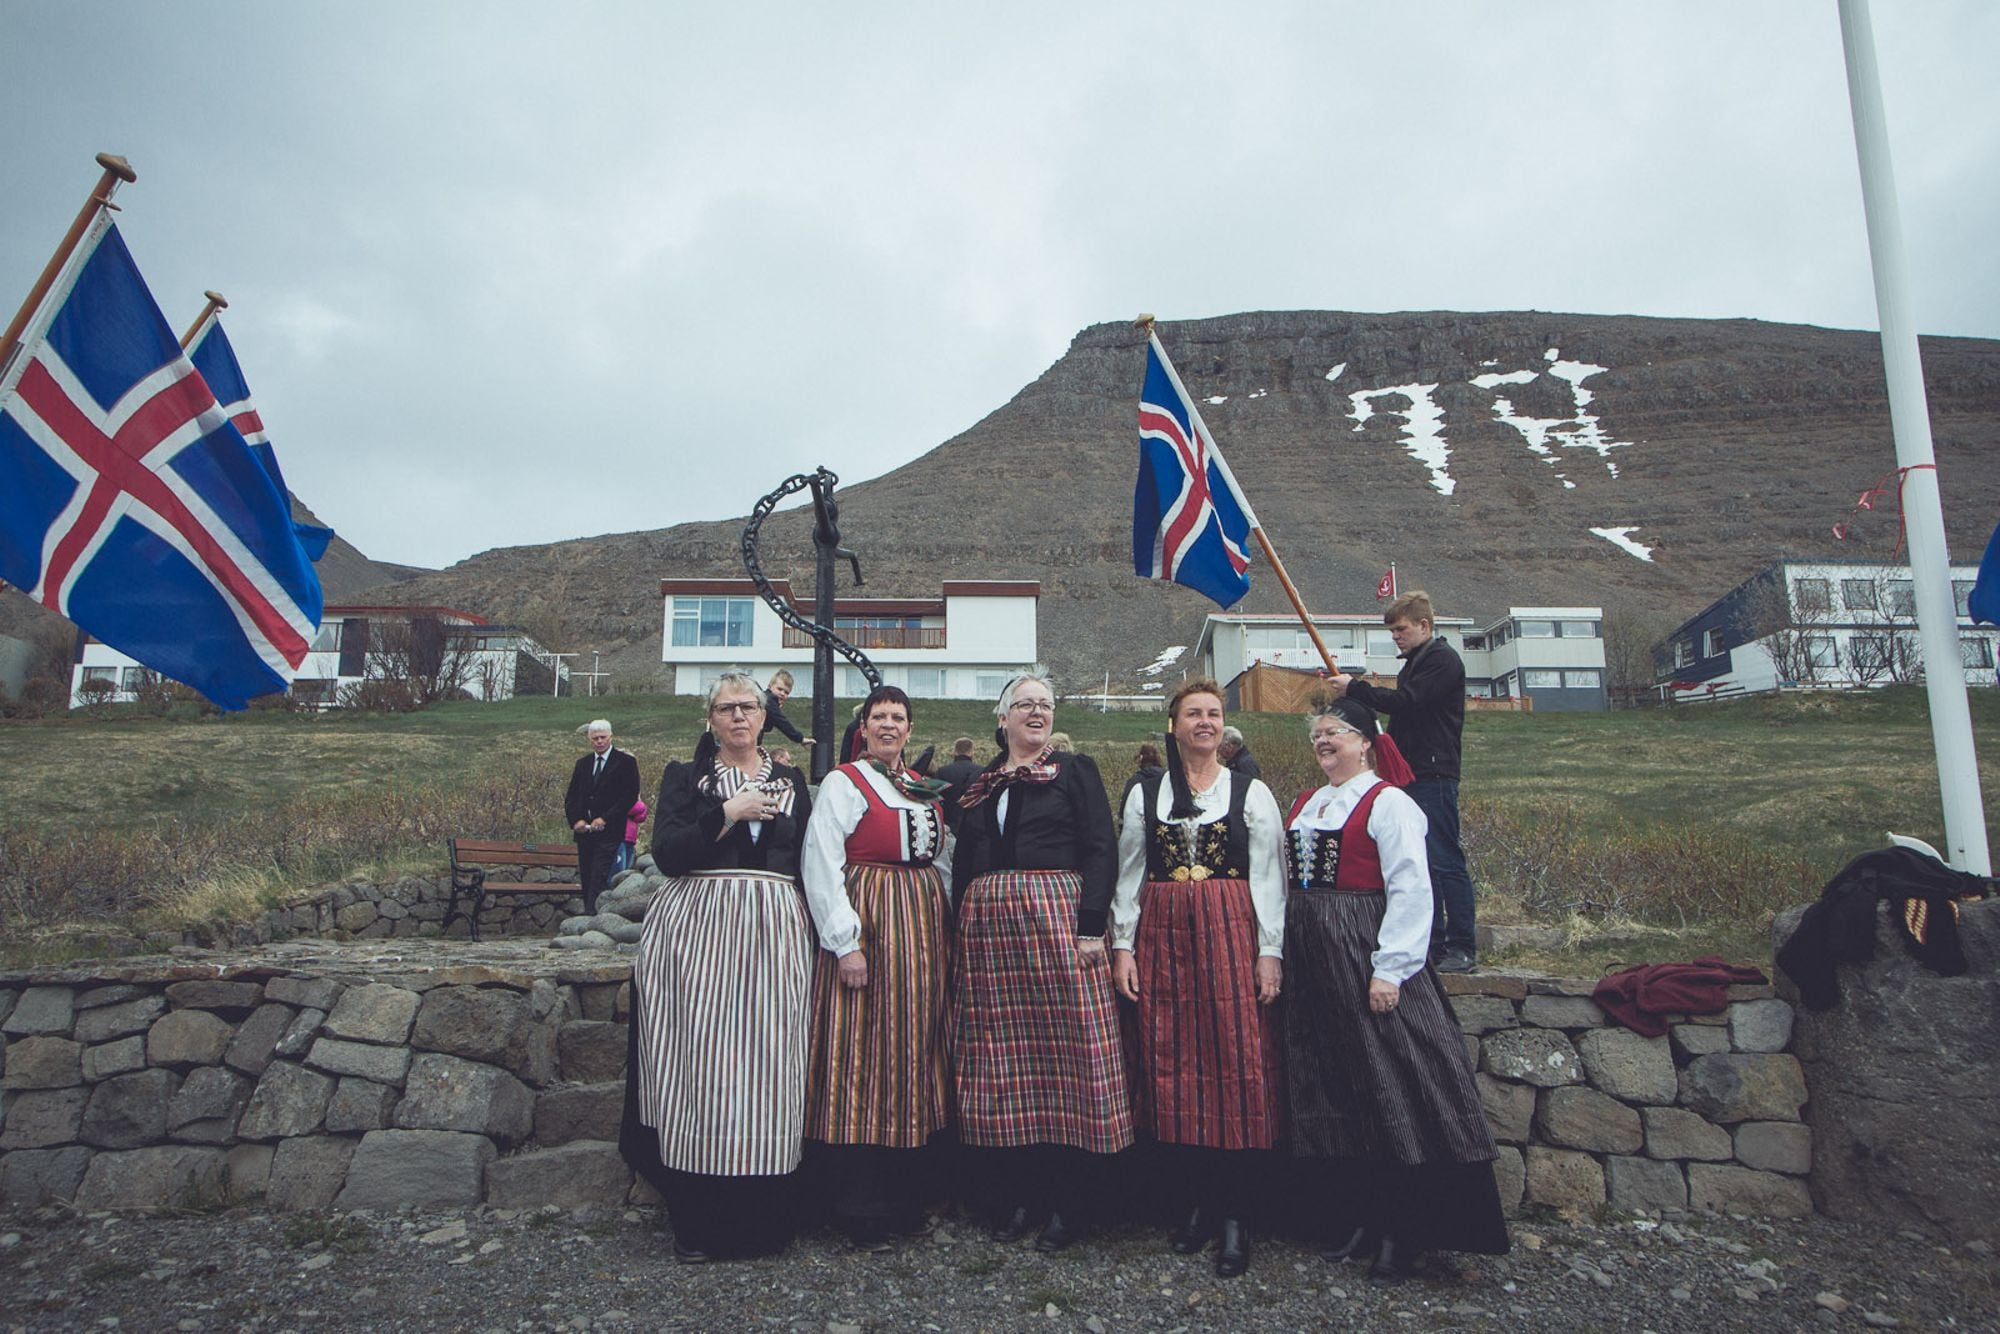 Women wearing the Icelandic national dress